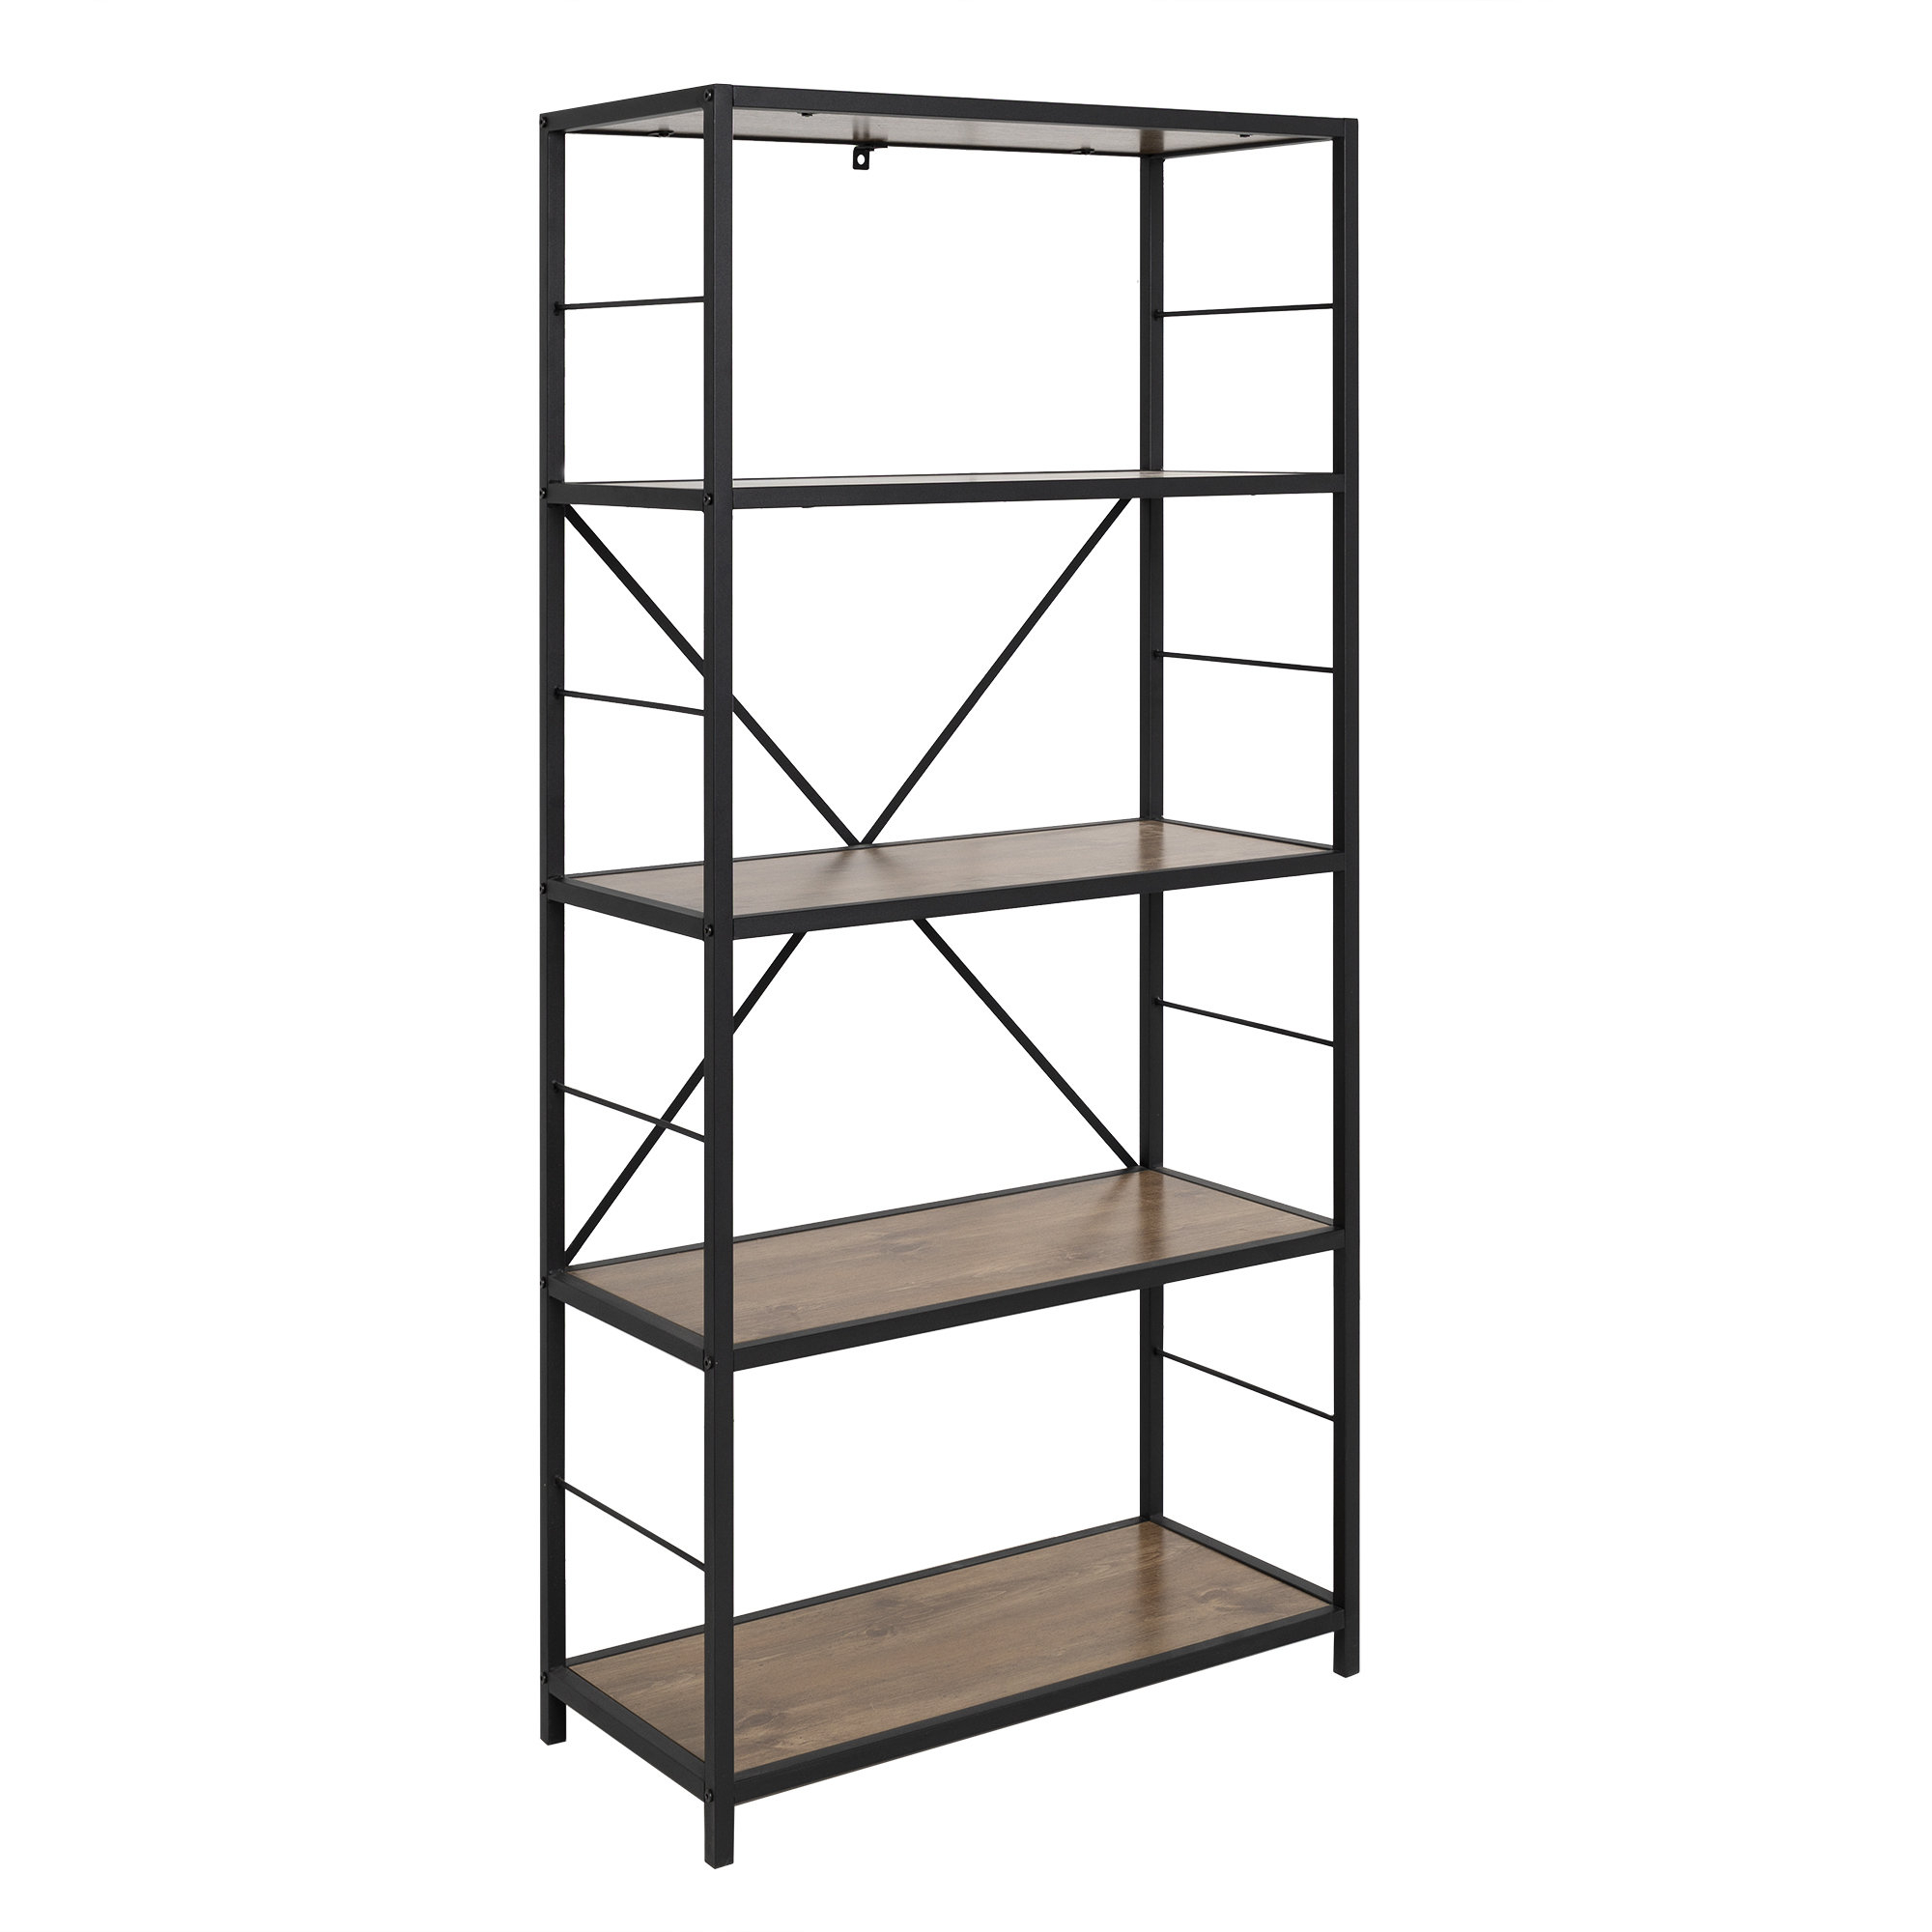 Ermont Etagere Bookcases Pertaining To Most Up To Date Chessani Etagere Bookcase (View 12 of 20)